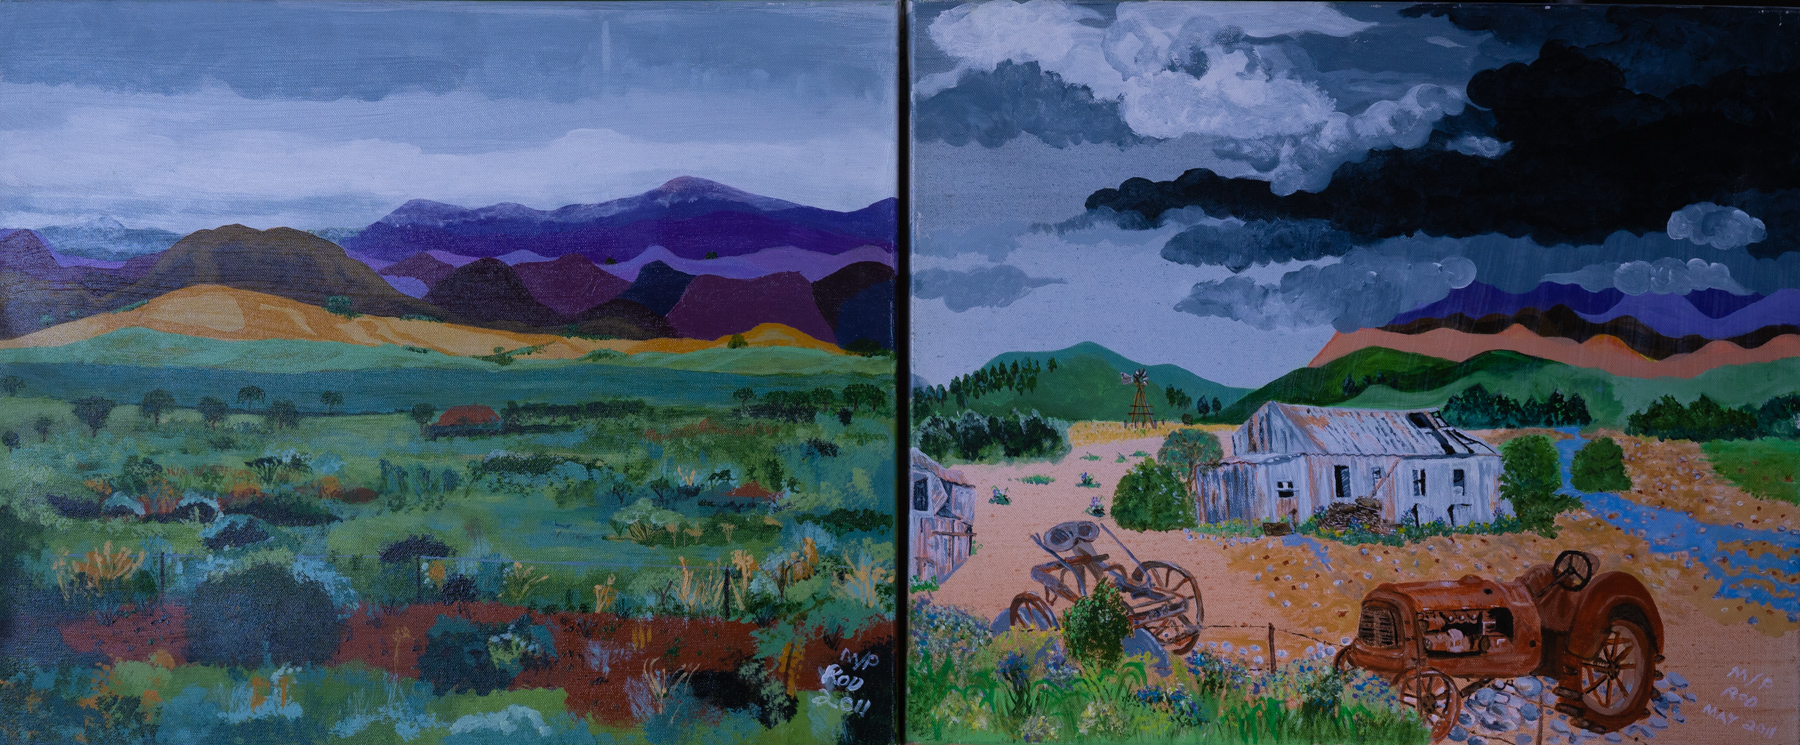 Two paintings of country scape with moody purple, blue, grey sky